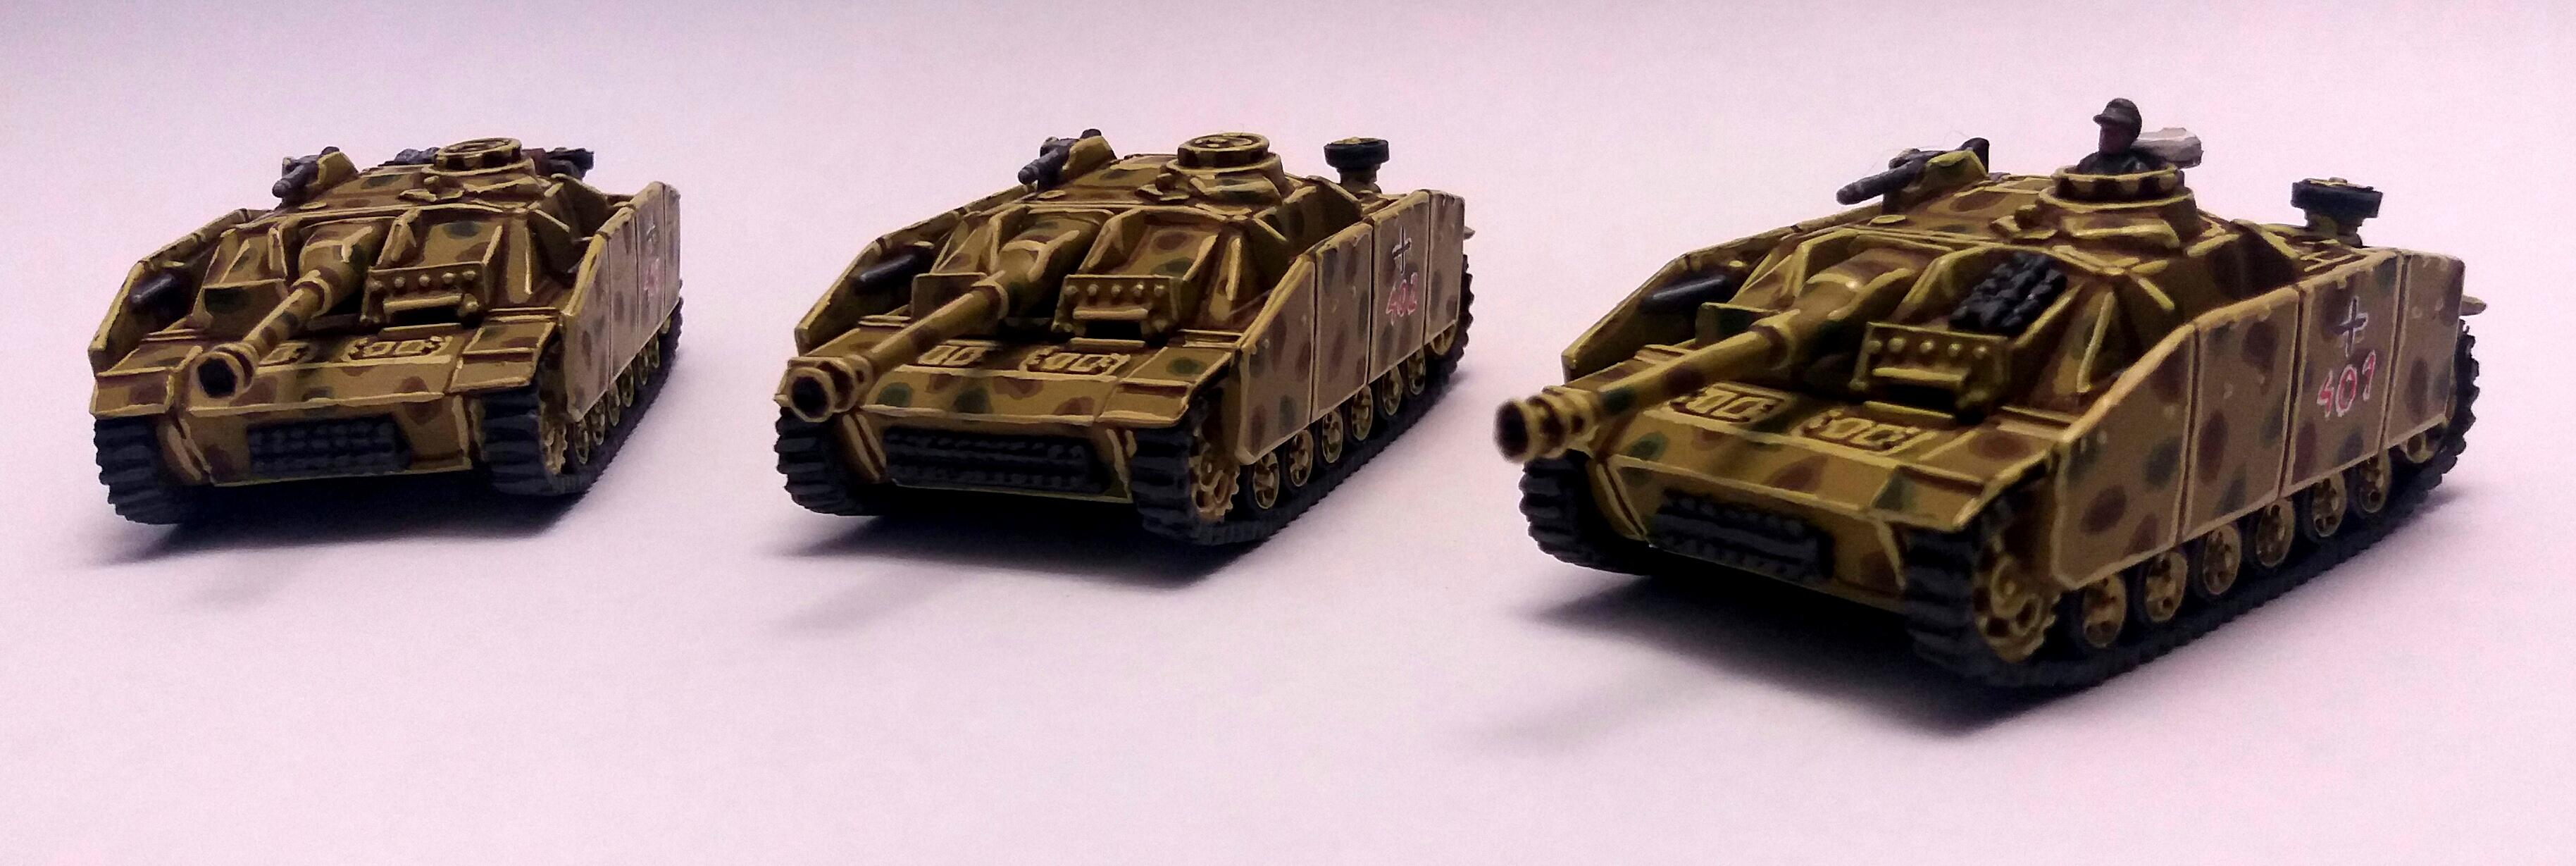 2, 3, Flames Of War, Germans, Iii, Stug, Stug3, Stugiii, War, Wehrmacht, World, World War 2